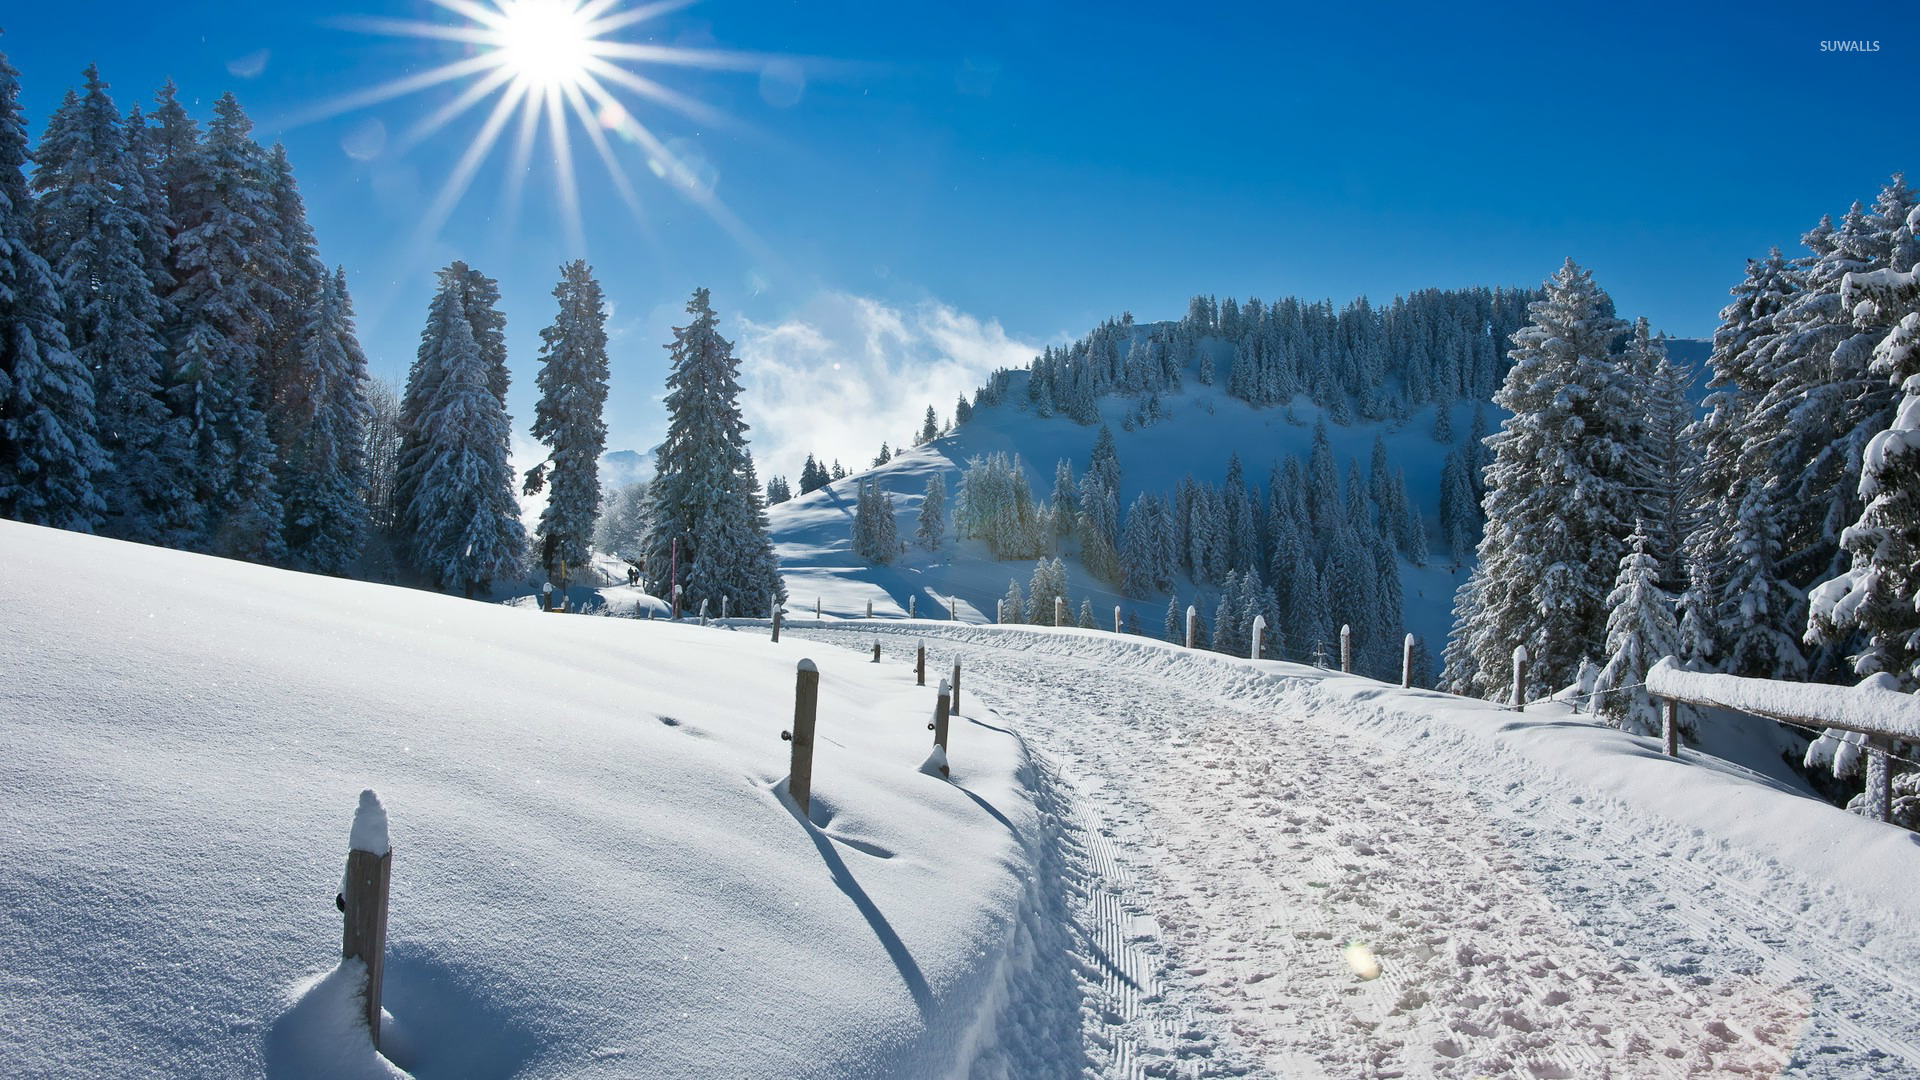 Sunny winter wallpaper   Nature wallpapers   16472 1680x1050